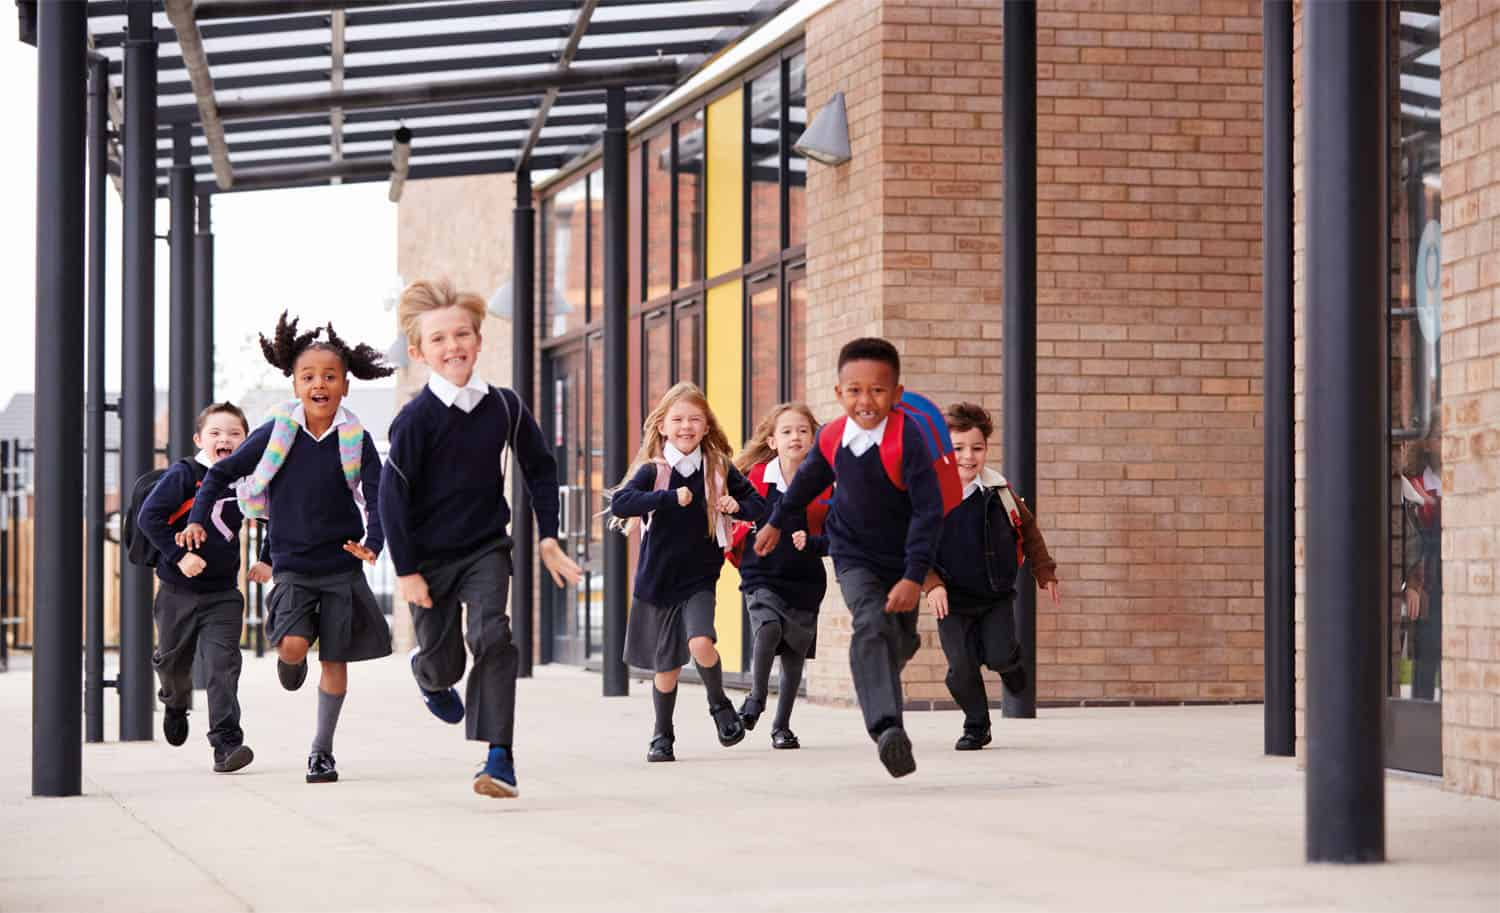 A group of school children running excitedly out of the building